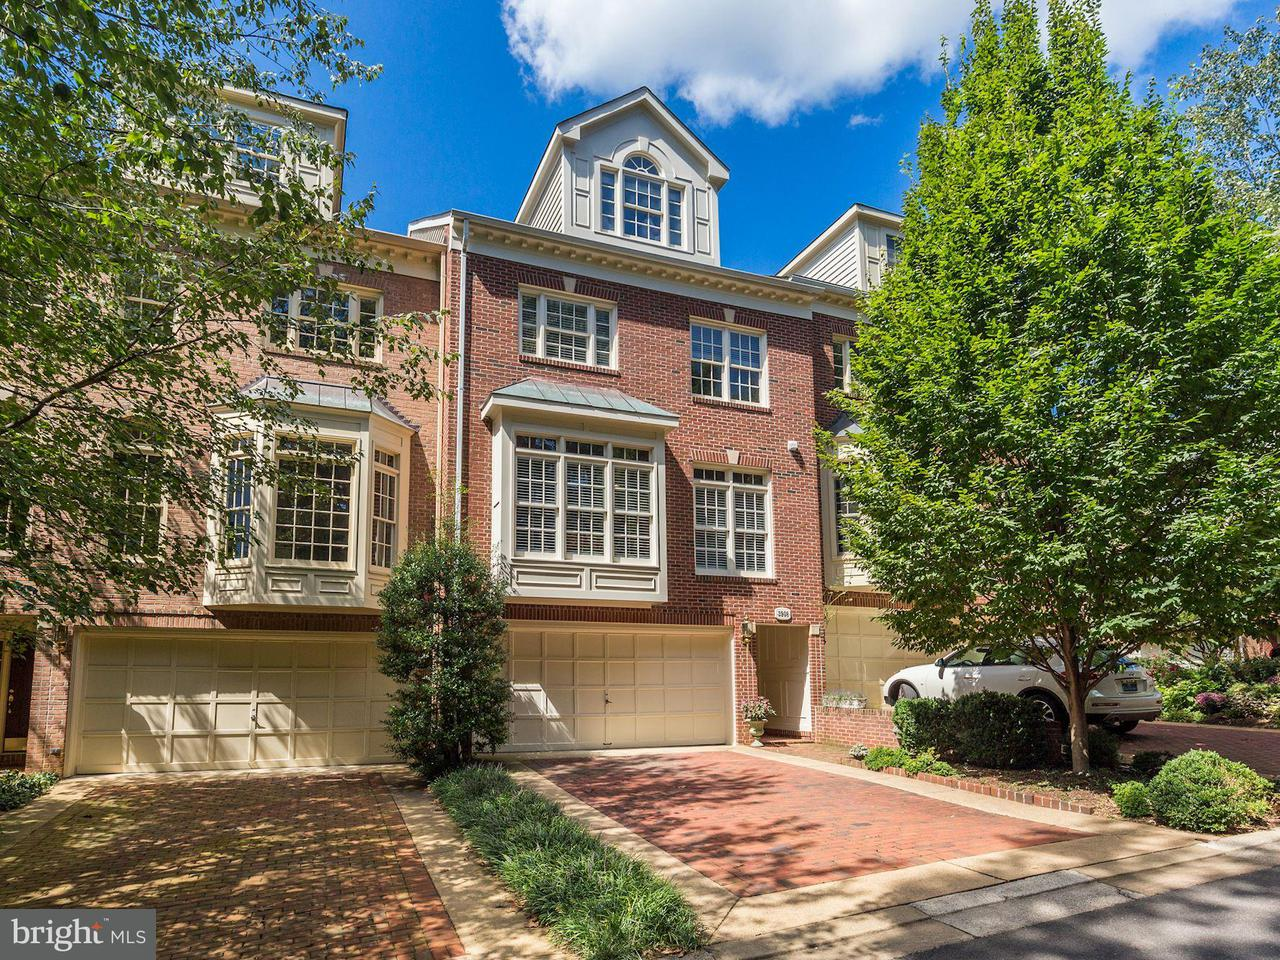 Townhouse for Sale at 3908 Hillandale Ct Nw 3908 Hillandale Ct Nw Washington, District Of Columbia 20007 United States